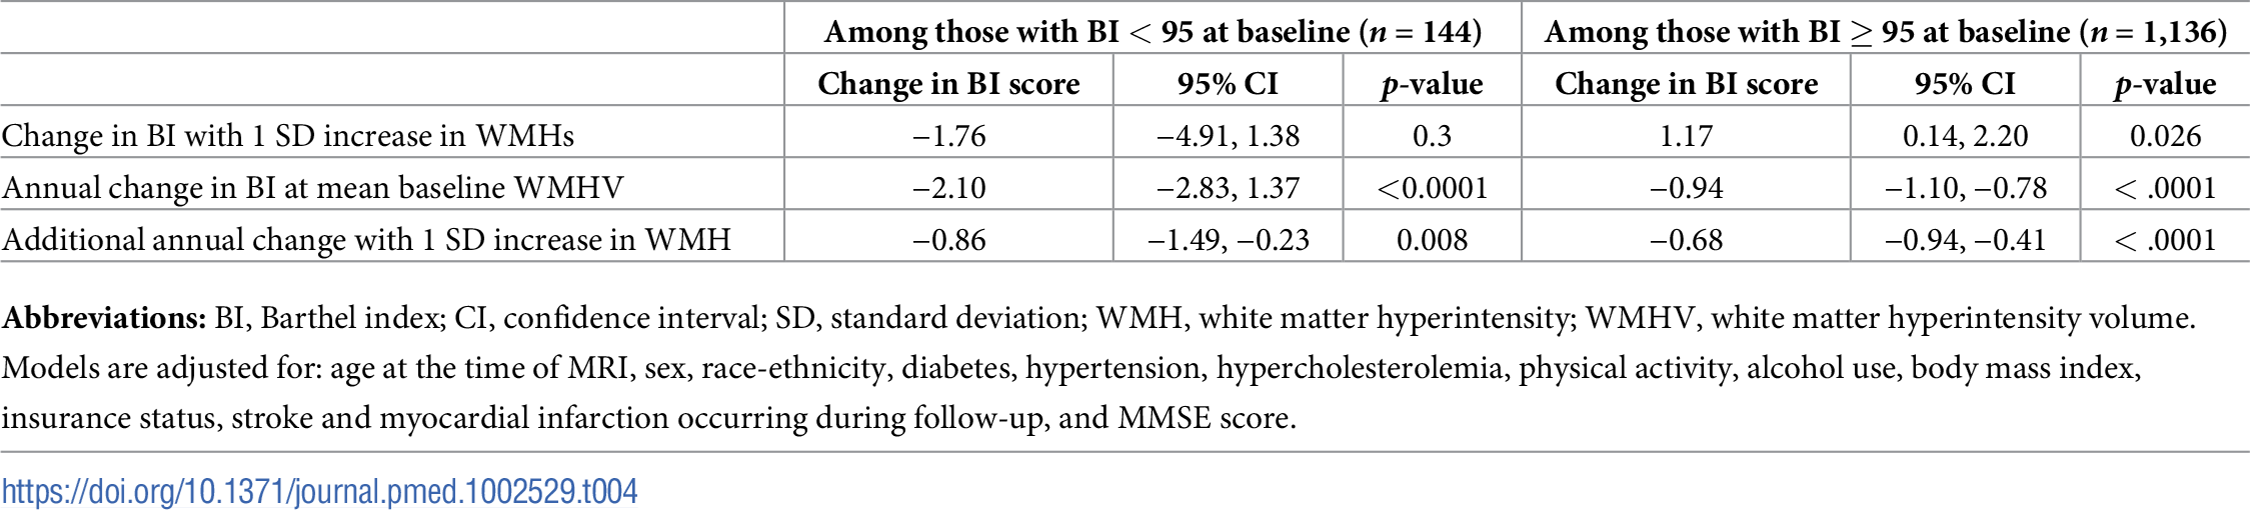 Associations between whole brain WMHV and functional status stratified by baseline BI score, in adjusted models.